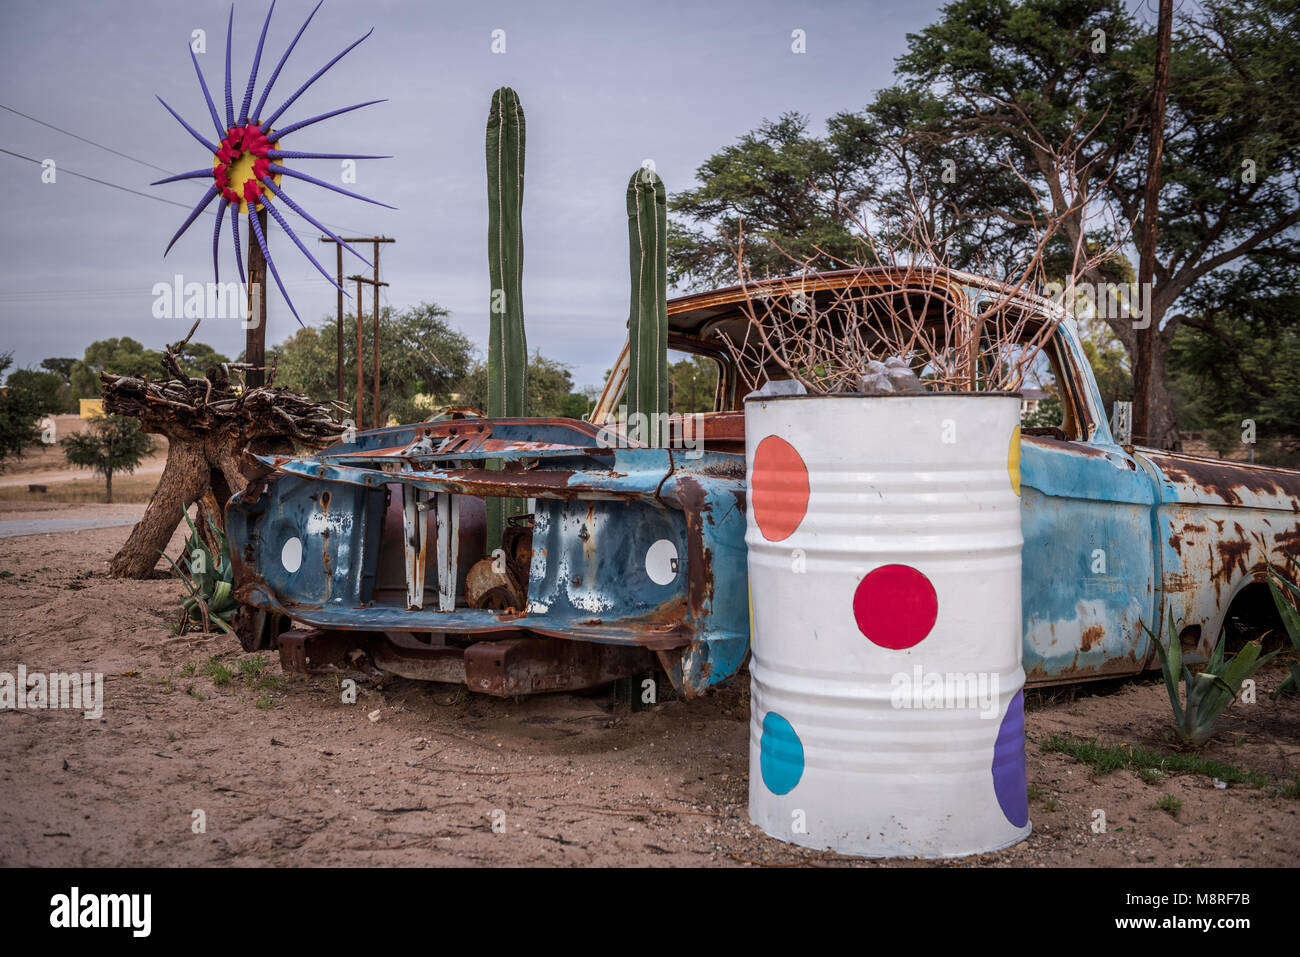 Public art at in Van Zylrus, Northern Cape, South Africa - Stock Image